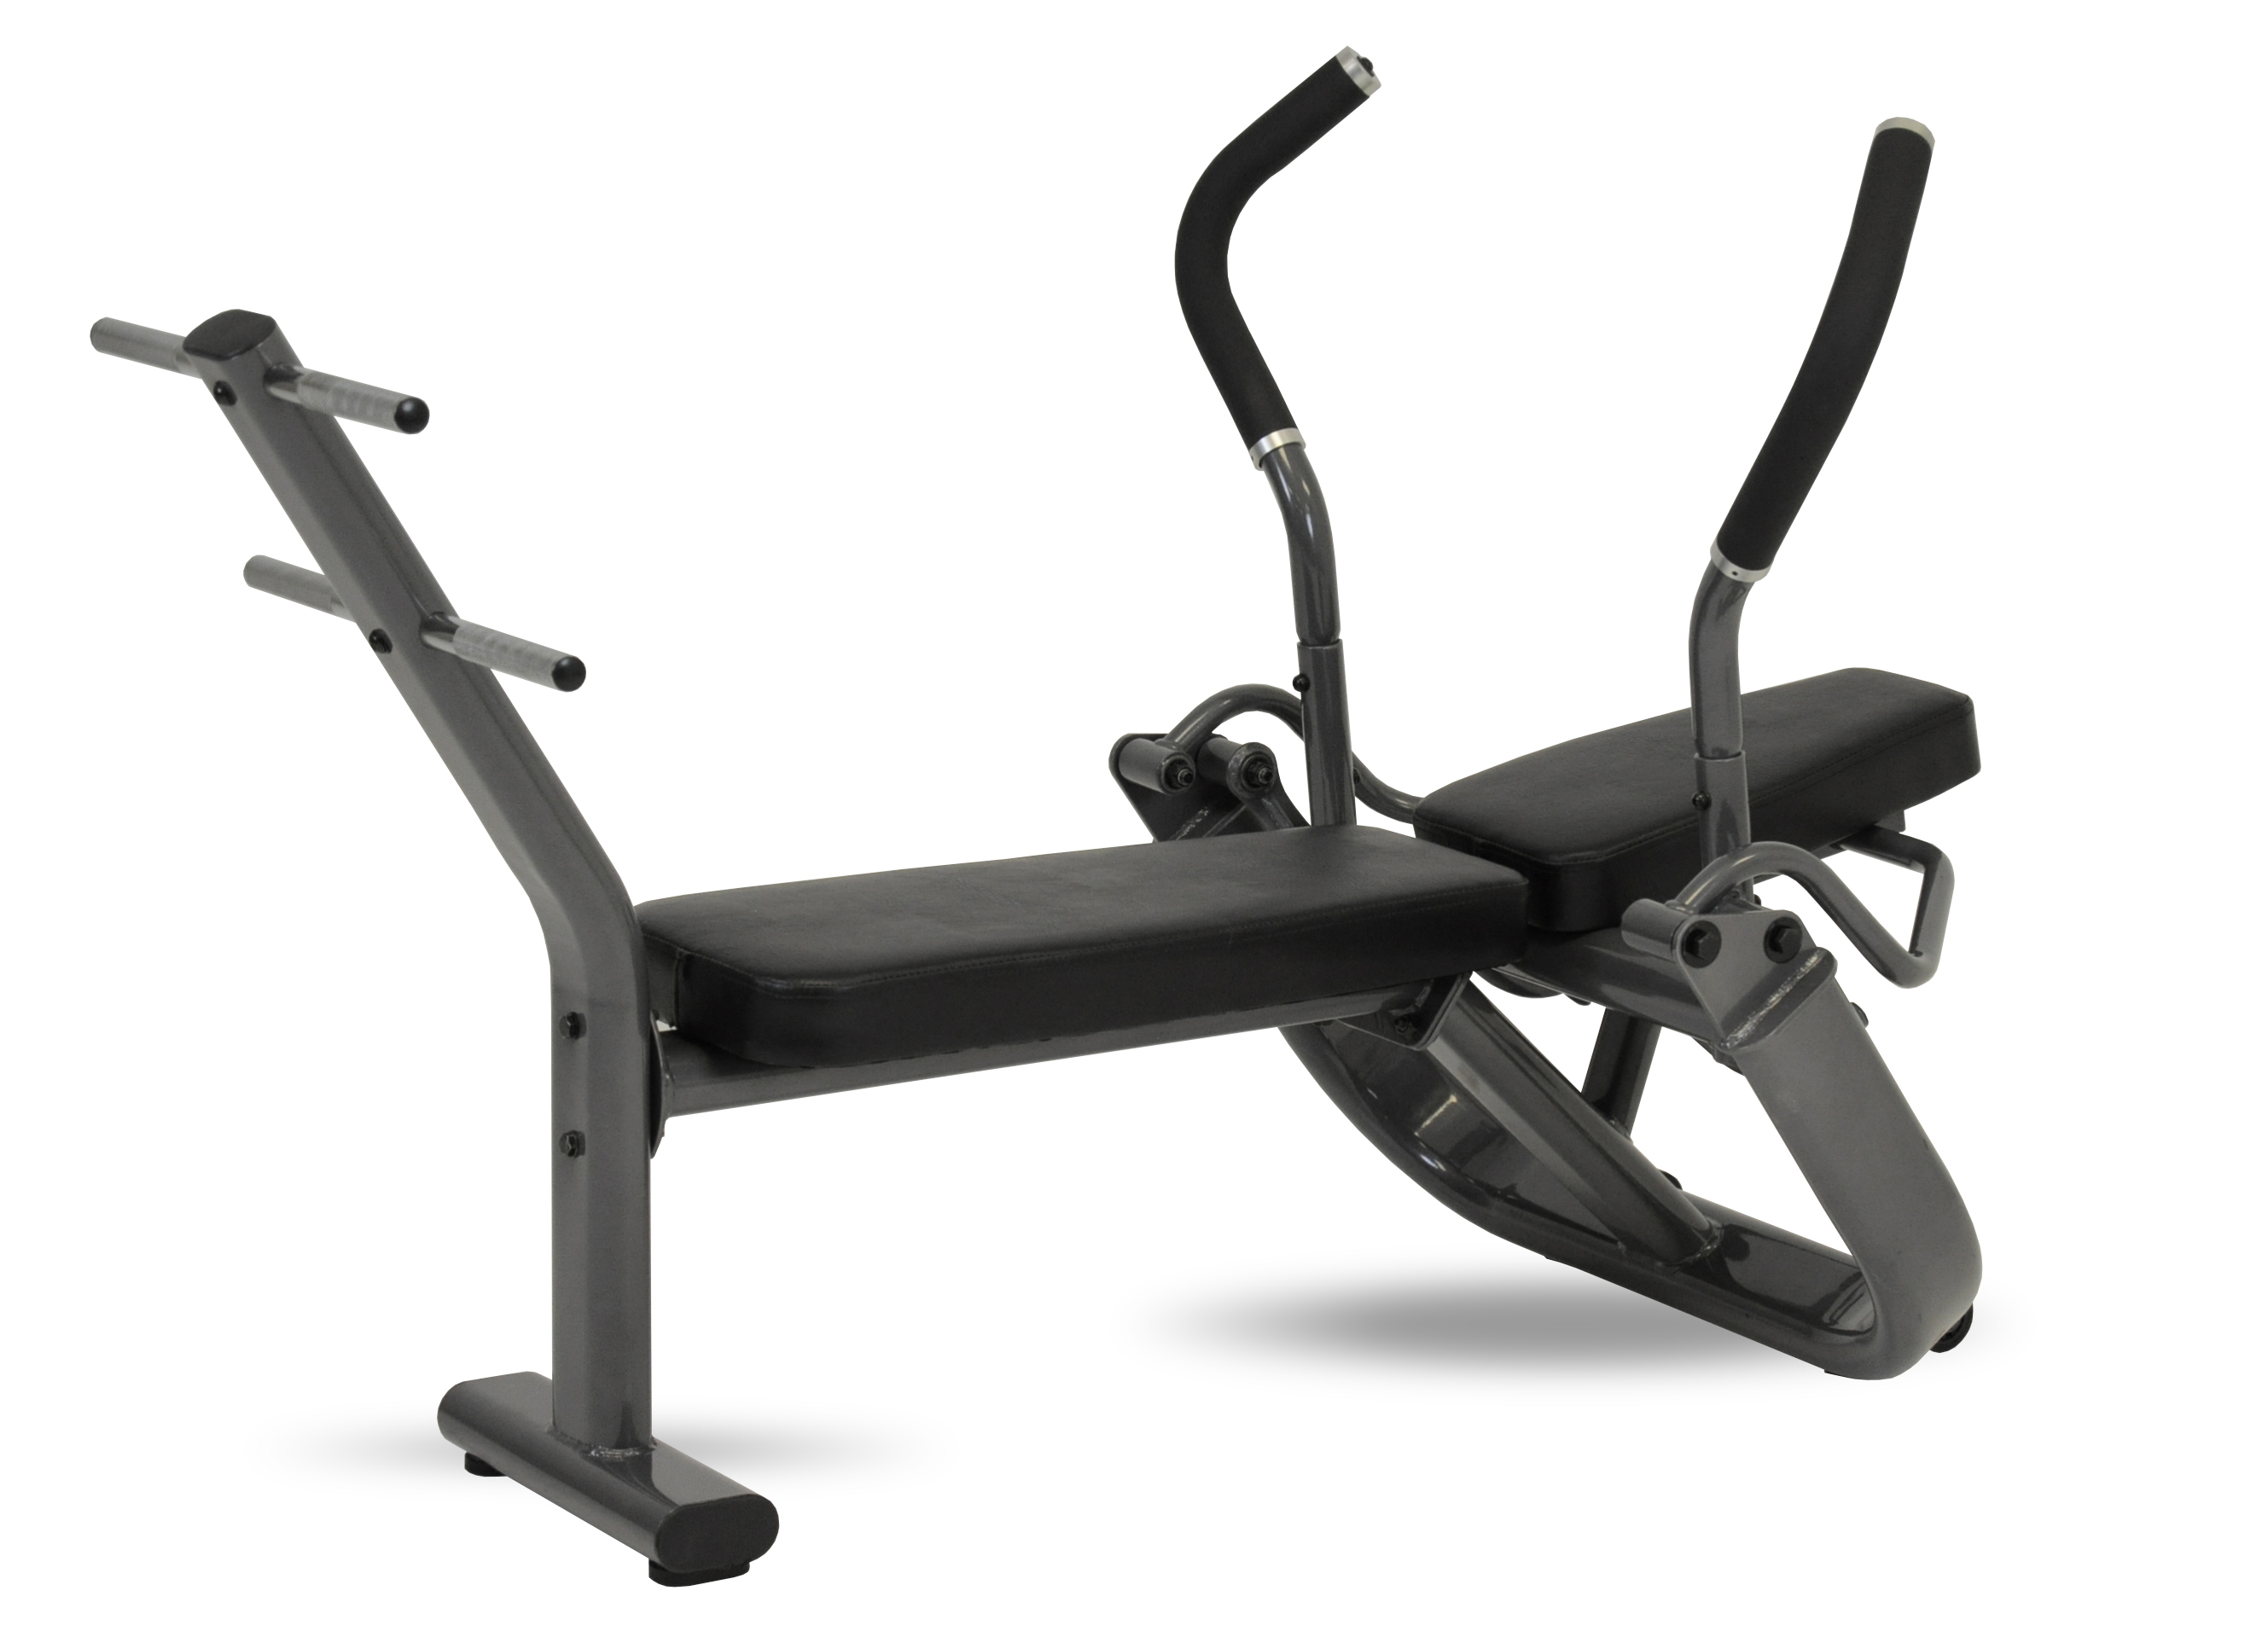 Inspire Acb1 Abdominal Crunch Bench Fitness Equipment Ni